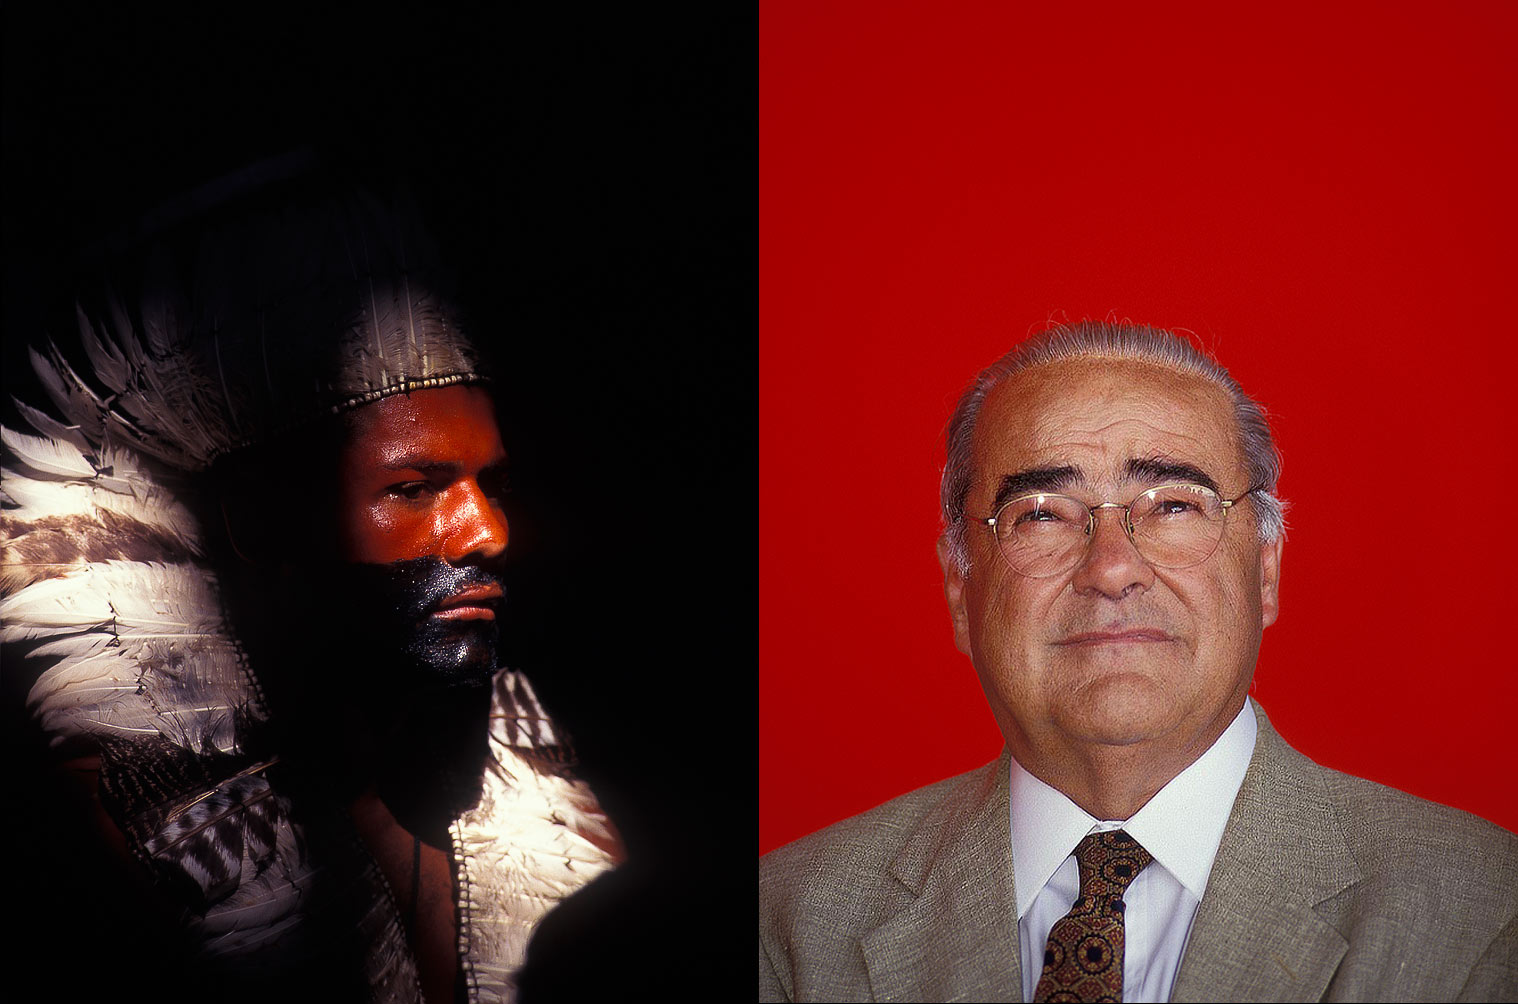 Portraits-corporate-and-indigenous-people.jpg